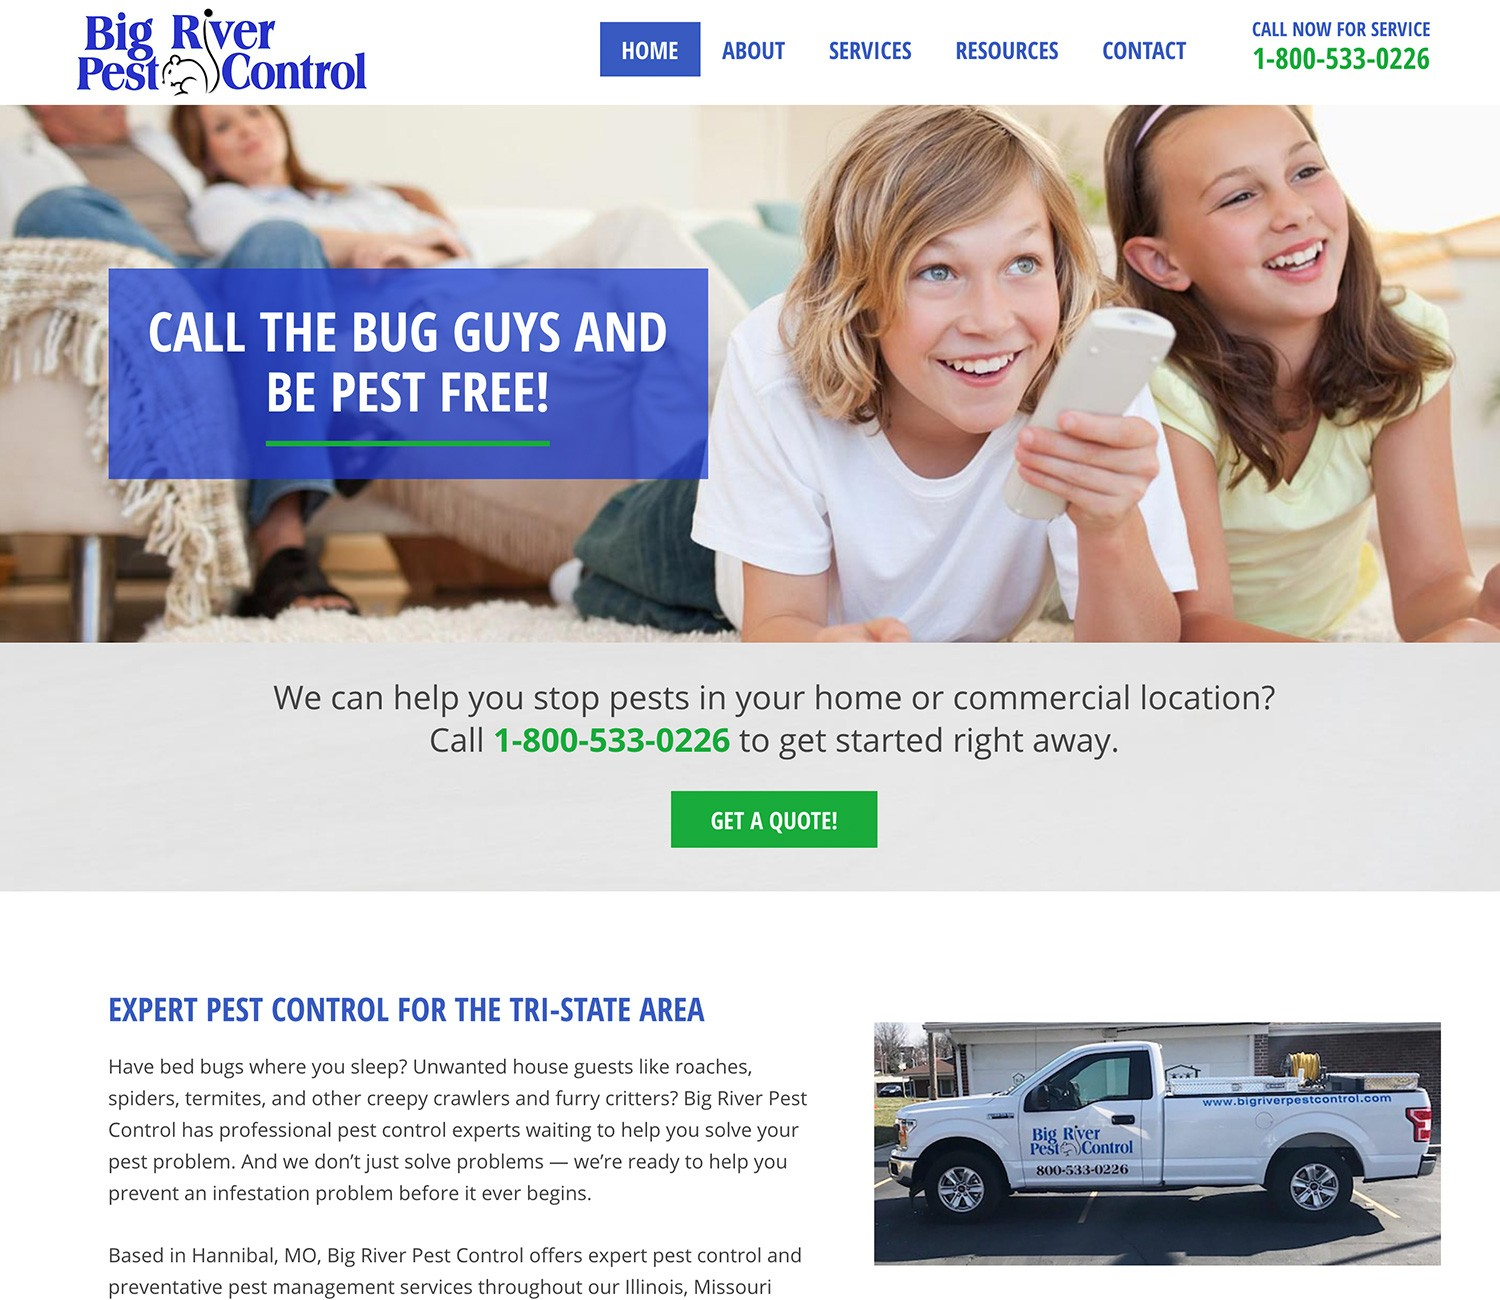 Big River Pest Control Website